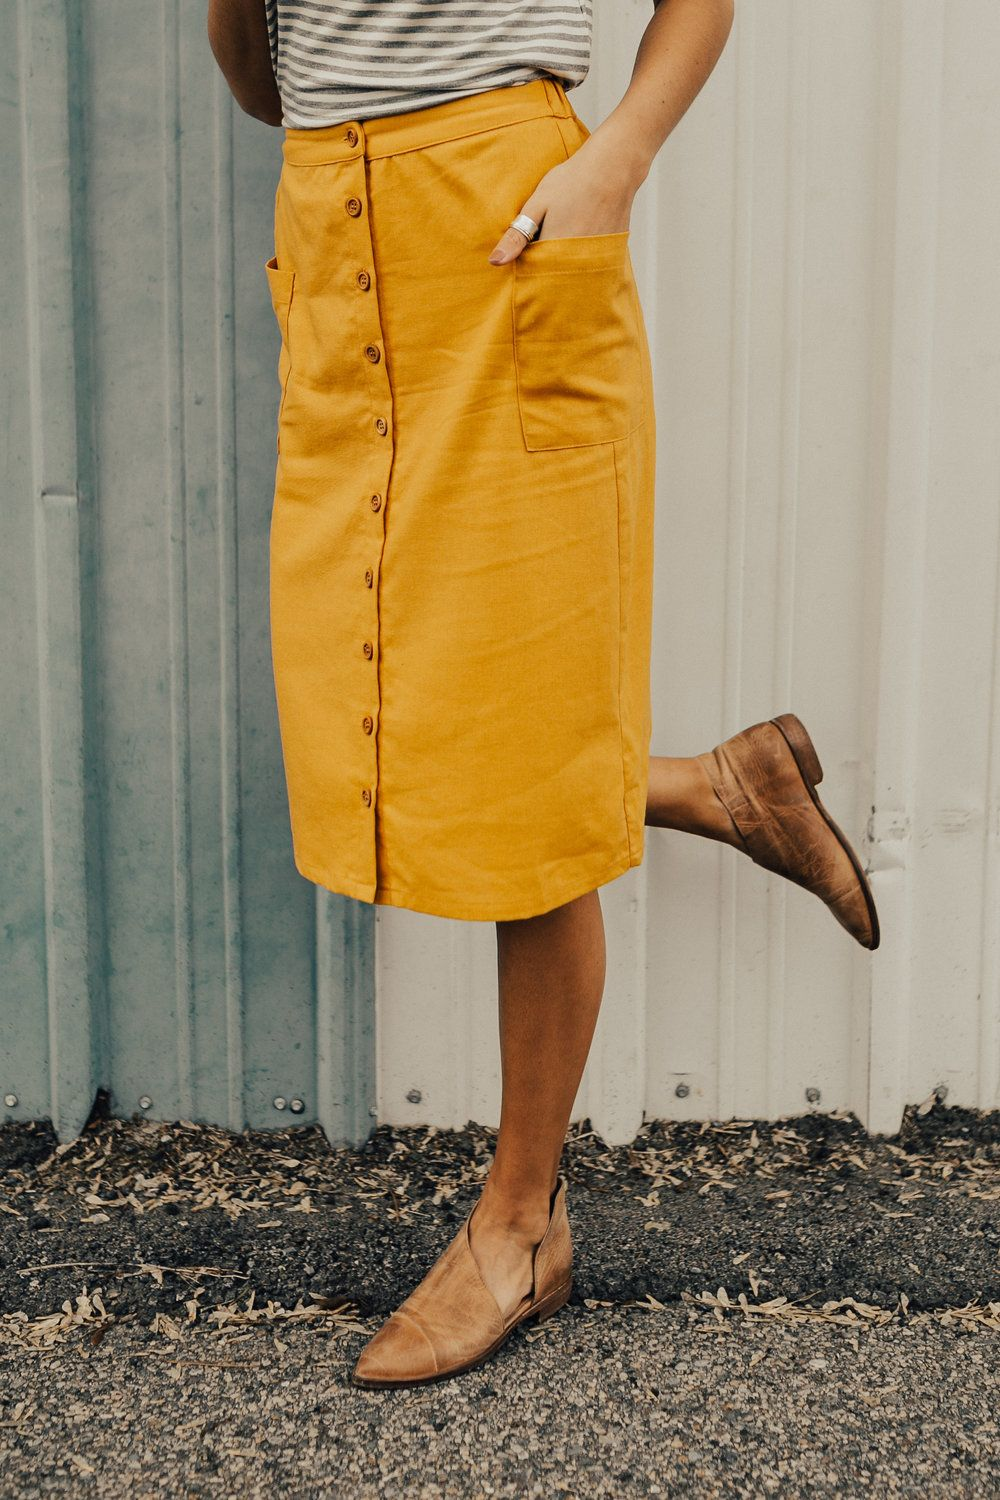 955d0644d1 Mustard Midi Skirt Wooden Button Down Front Side Pouch Pockets Subtle  A-Line View Size Chart Model is 5'9